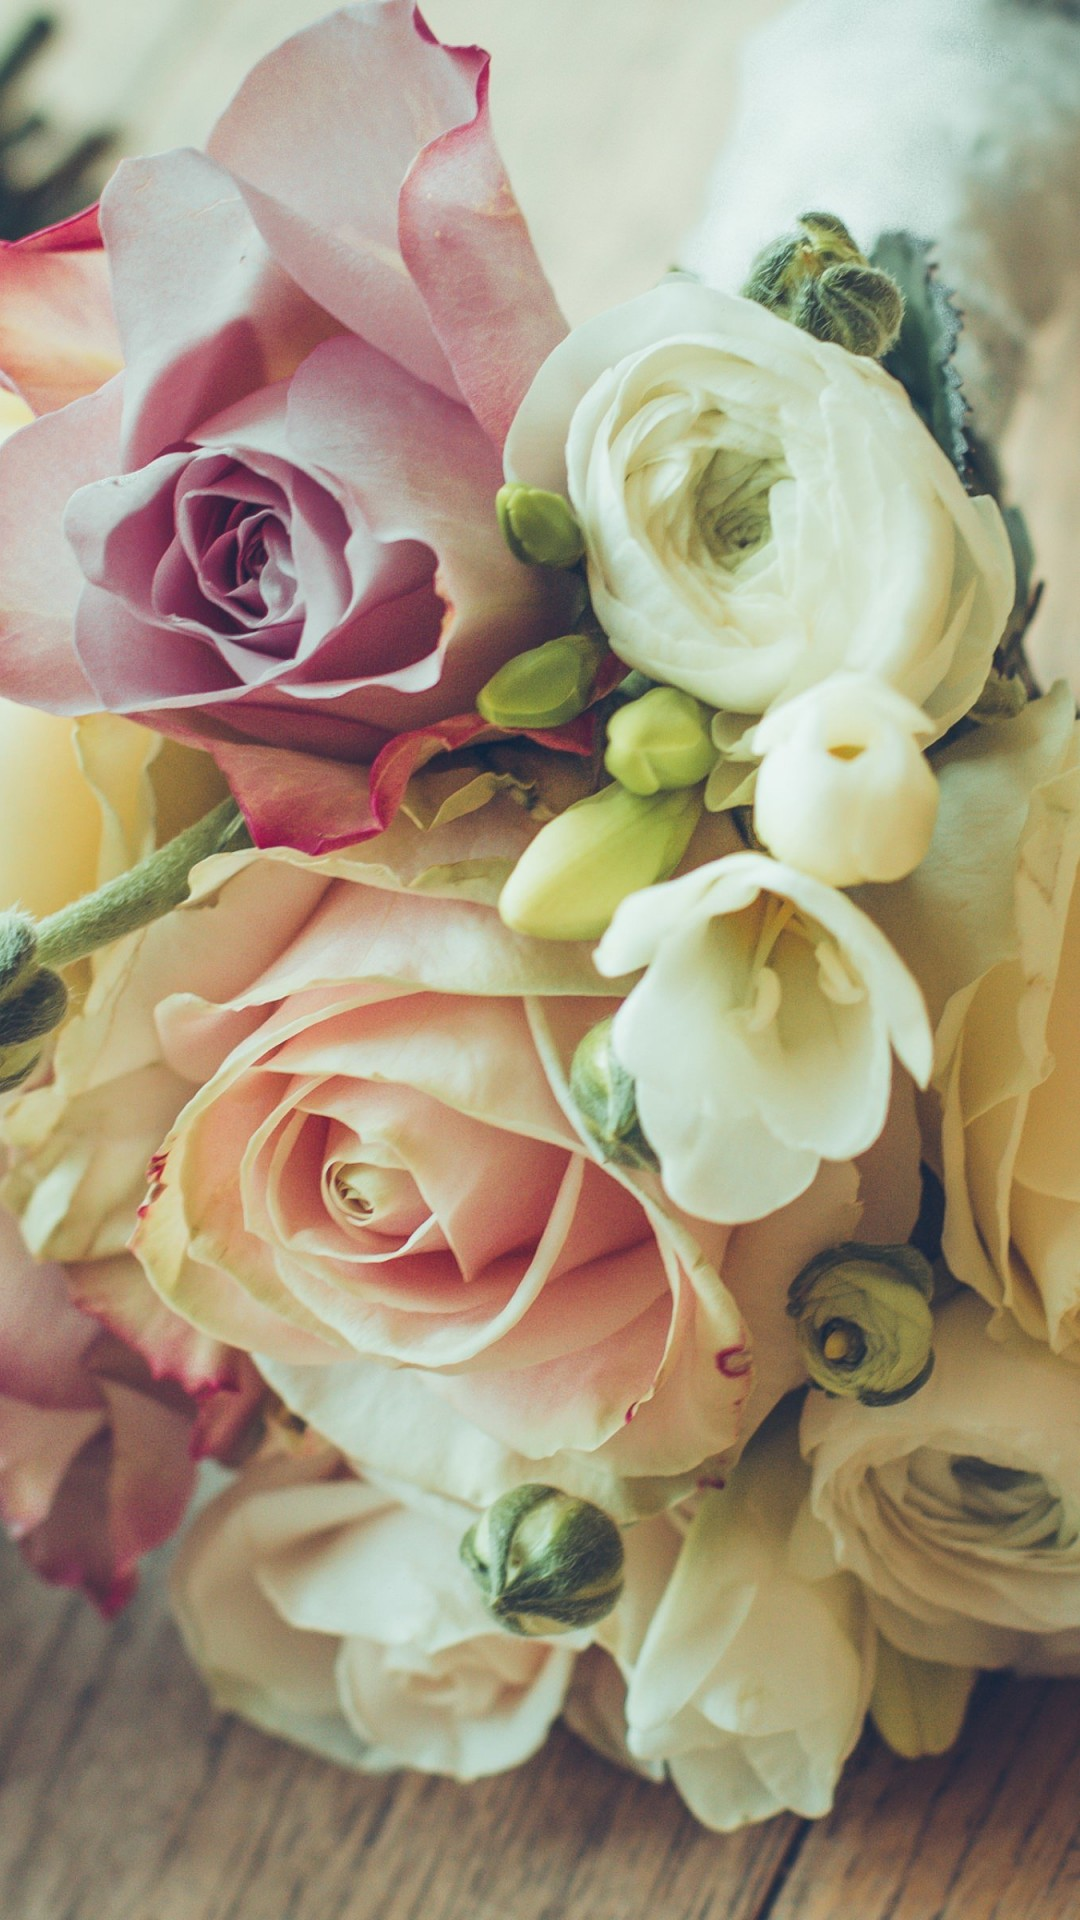 Roses Bouquet Composition Wallpaper for SONY Xperia Z2